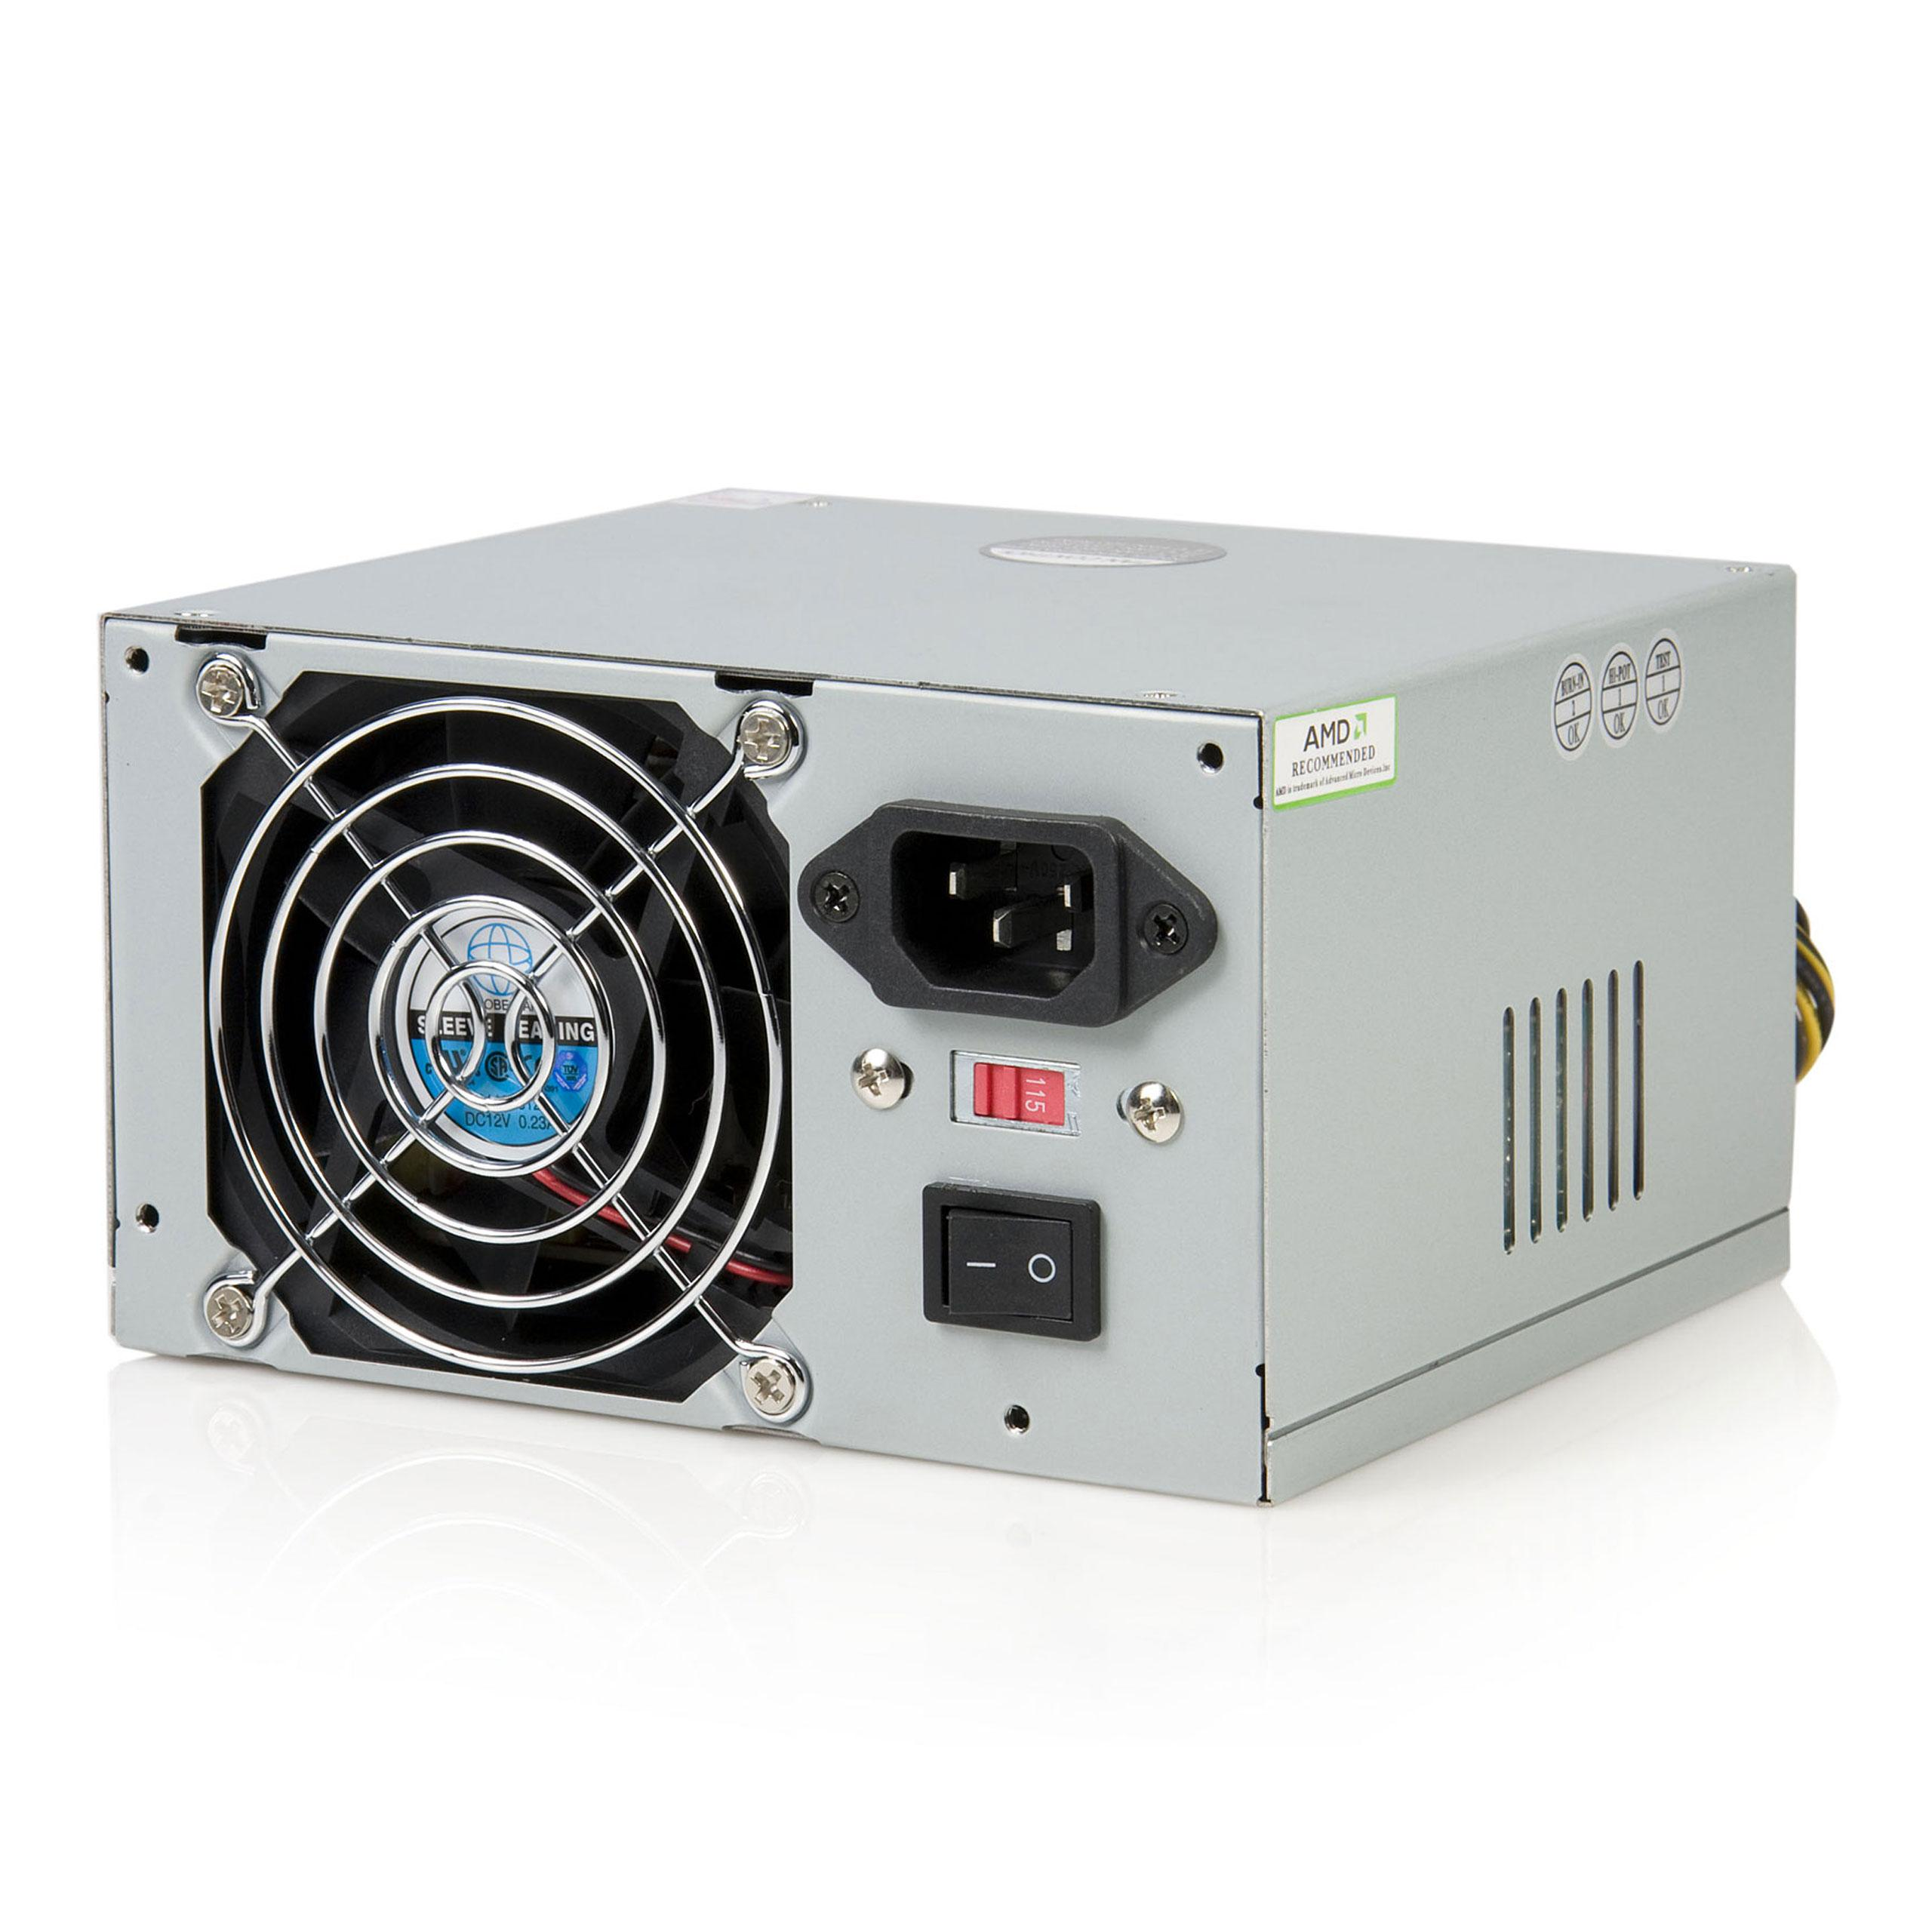 What kind of power supply is needed